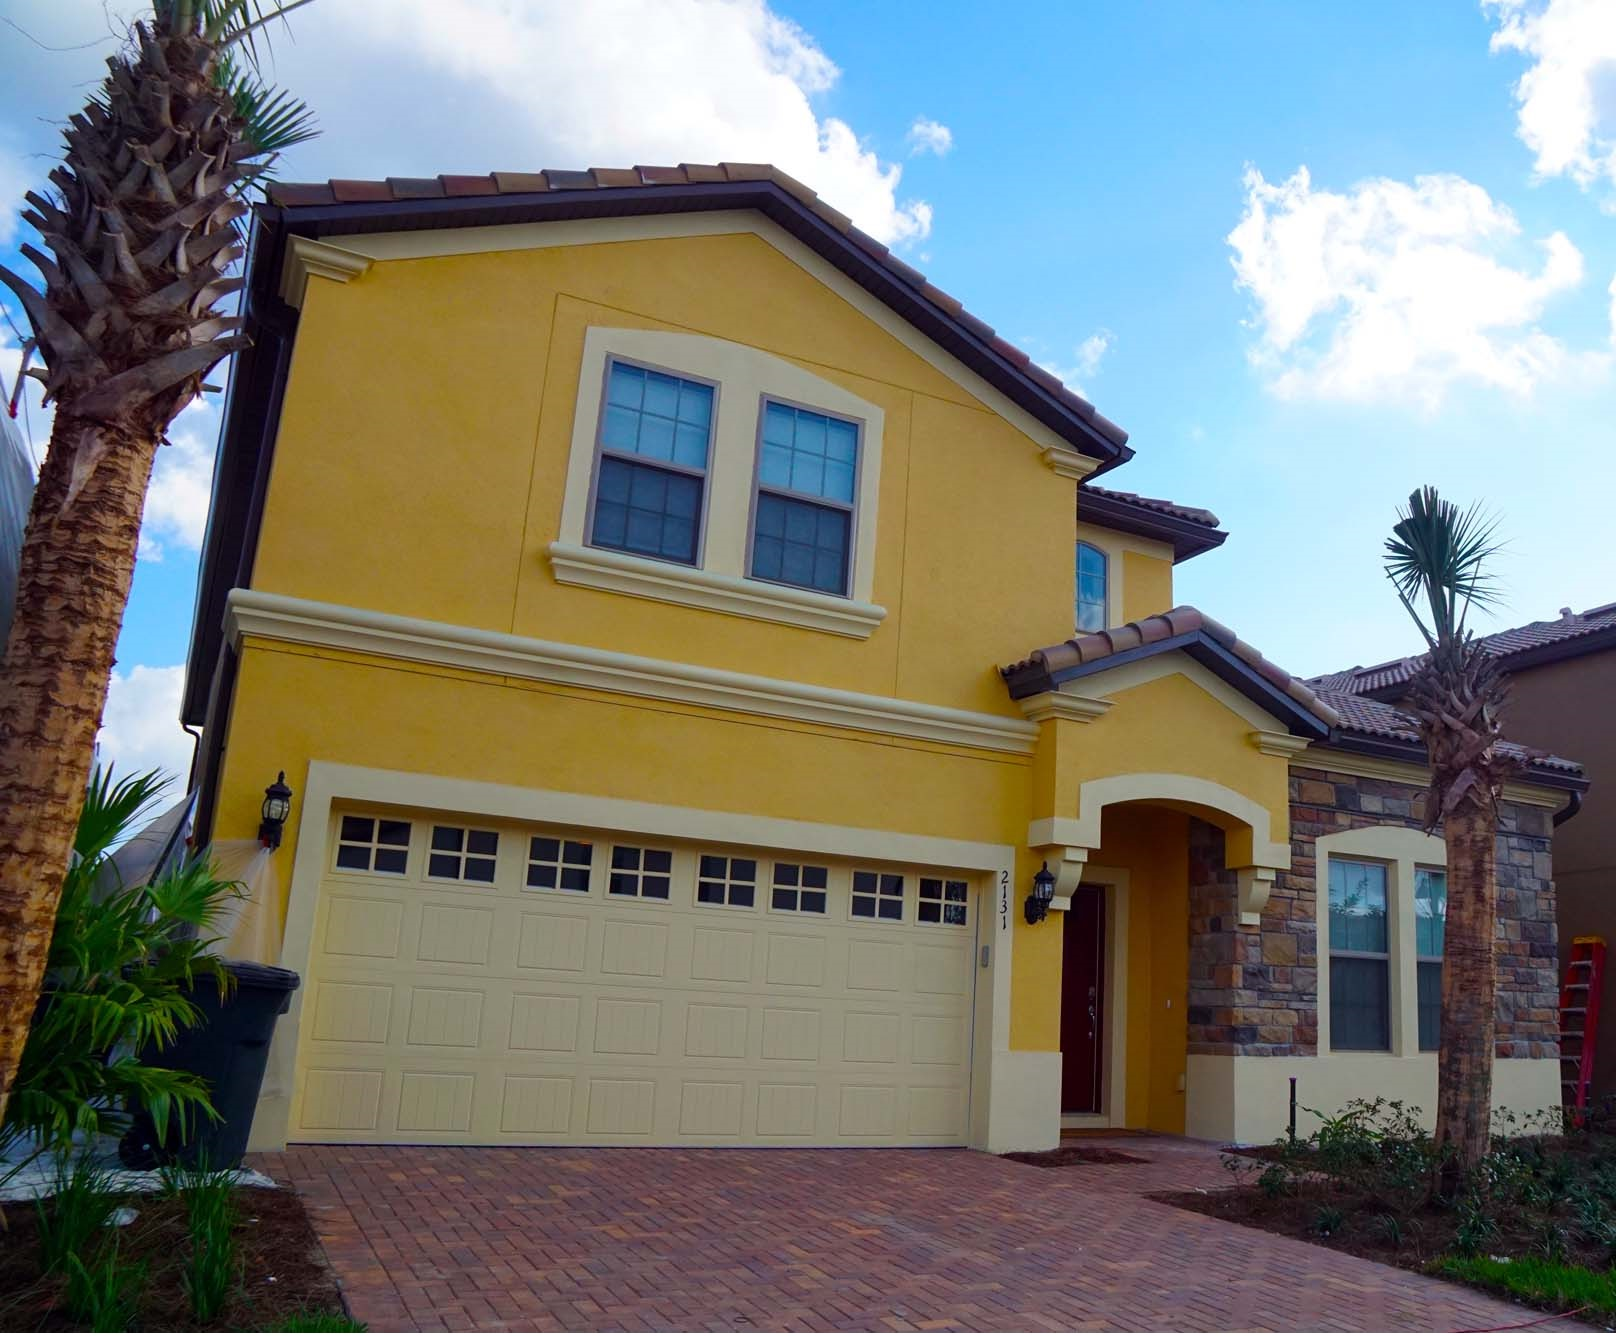 8 Bedroom Vacation Homes In Kissimmee Florida 28 Images Stunning 8 Bedroom Vacation Homes In